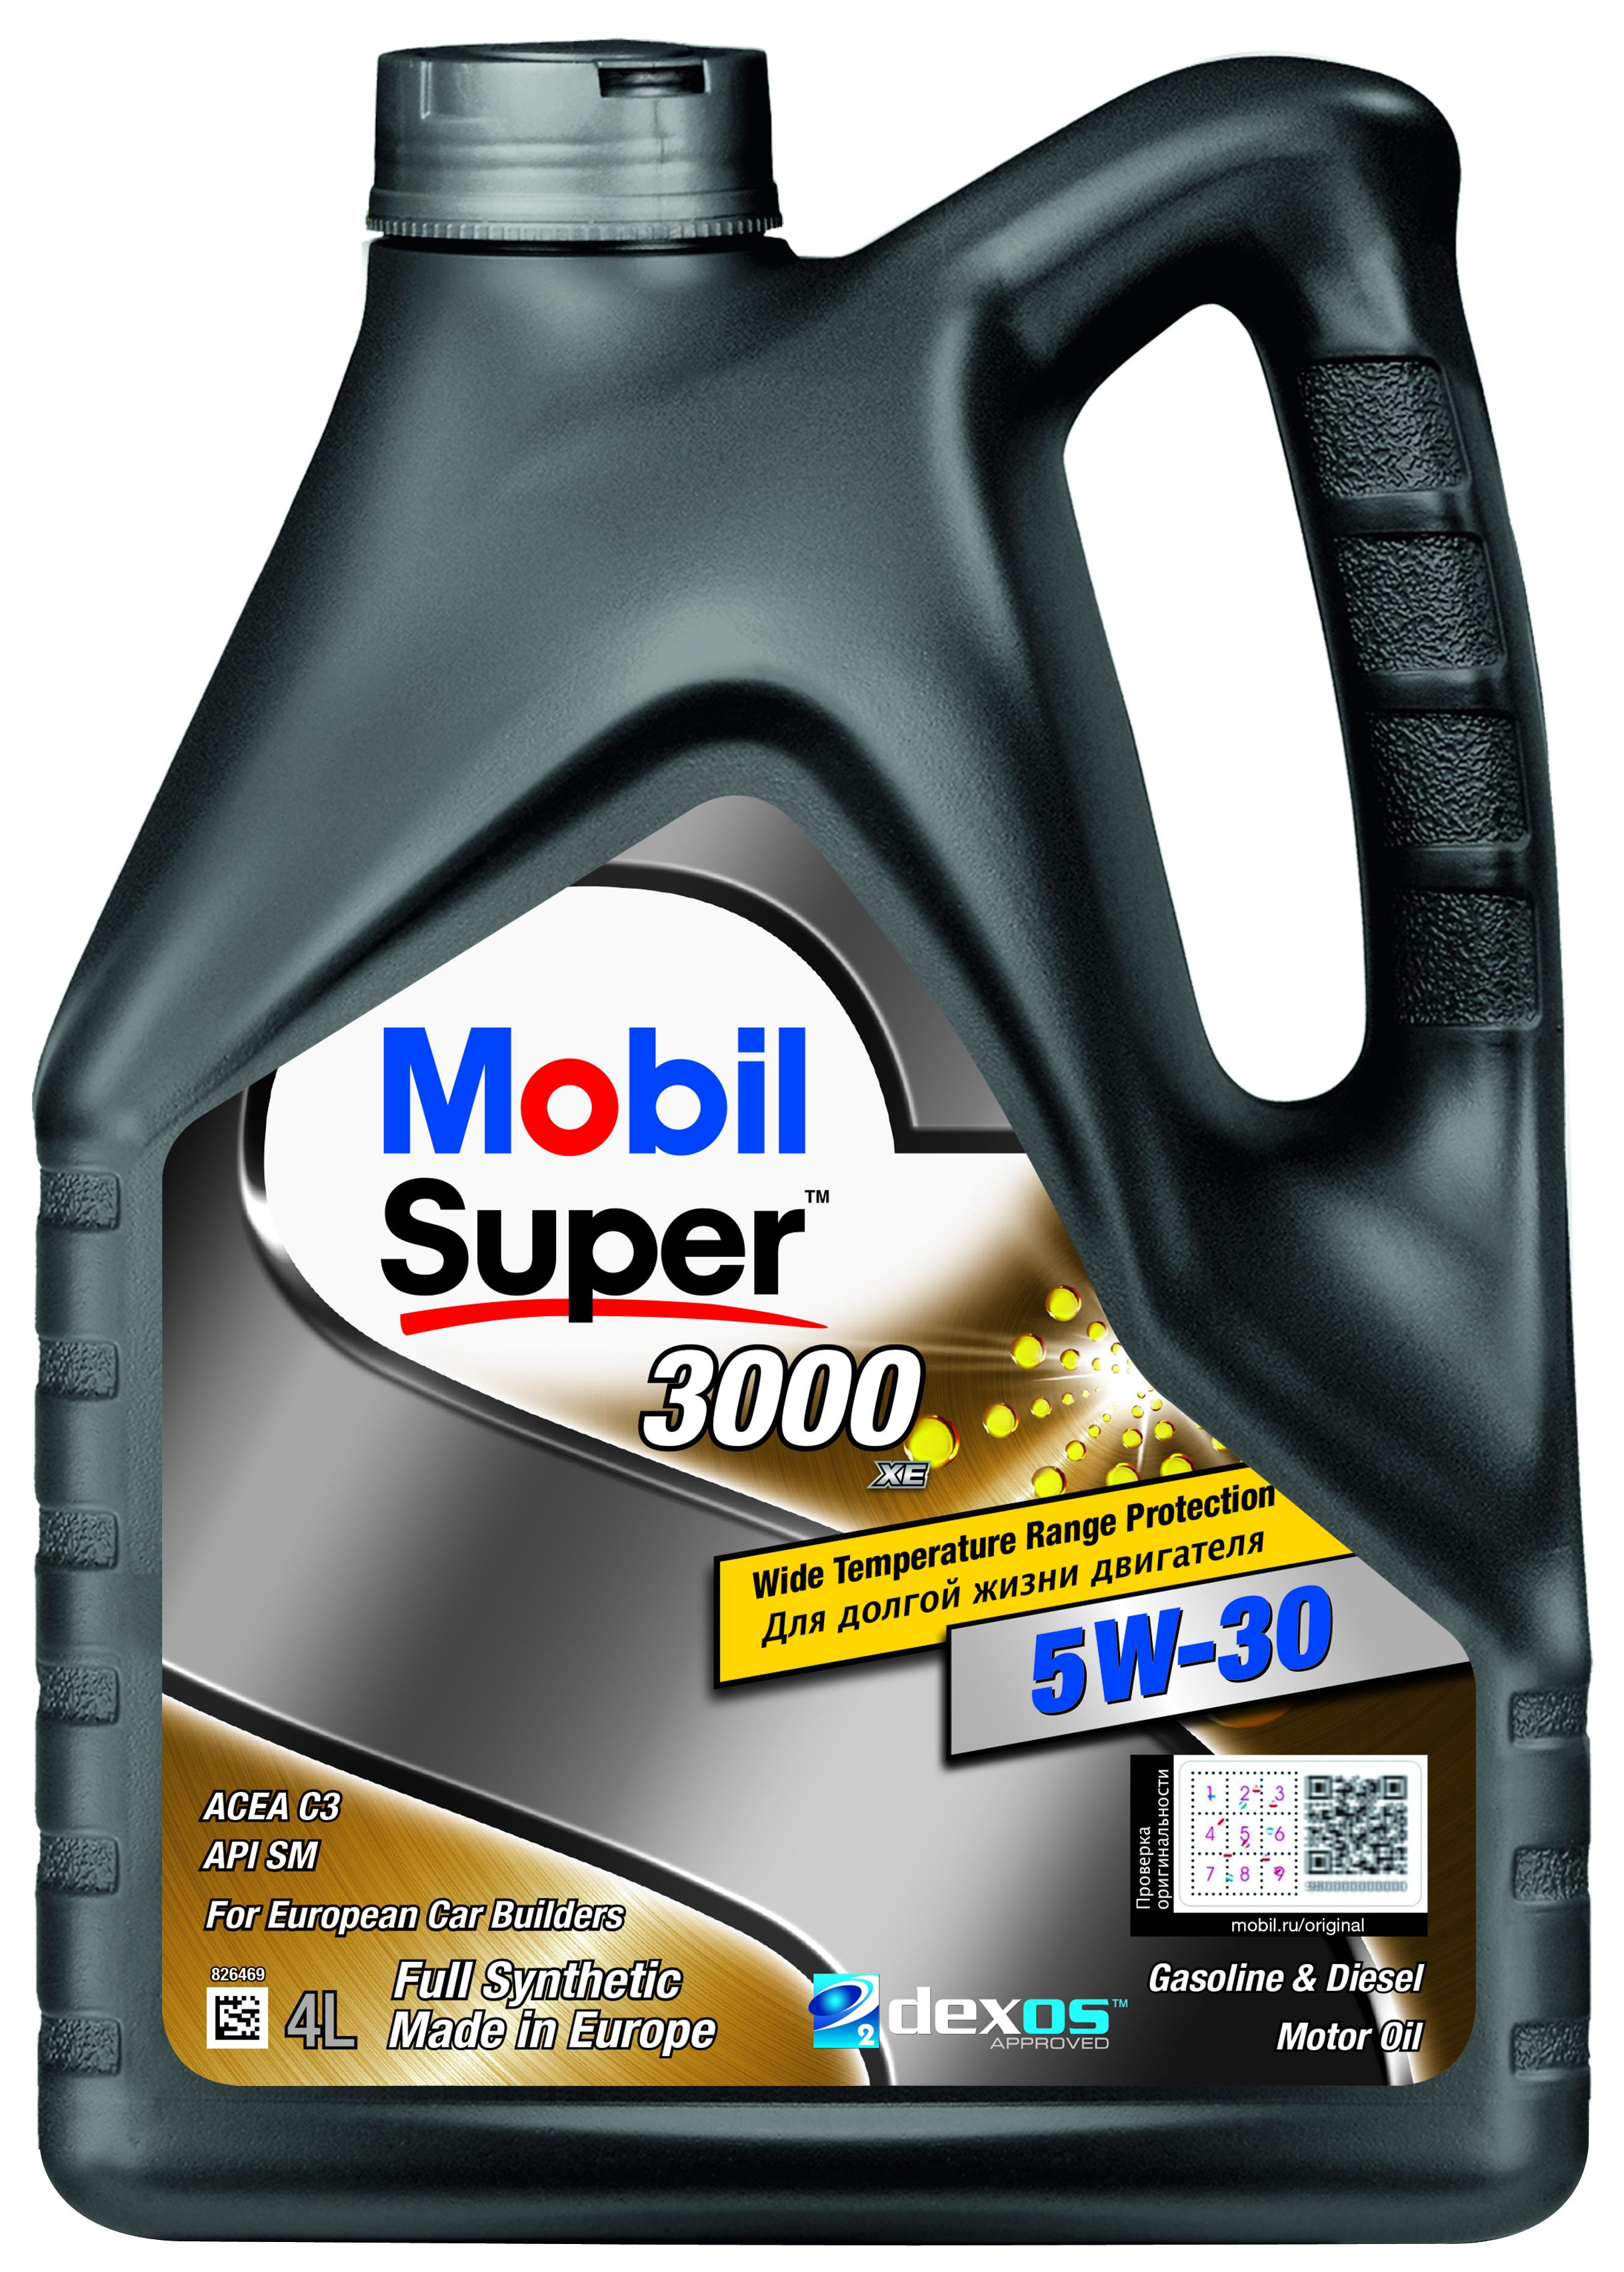 Моторное масло Mobil Super 3000 XE 5W-30 4l